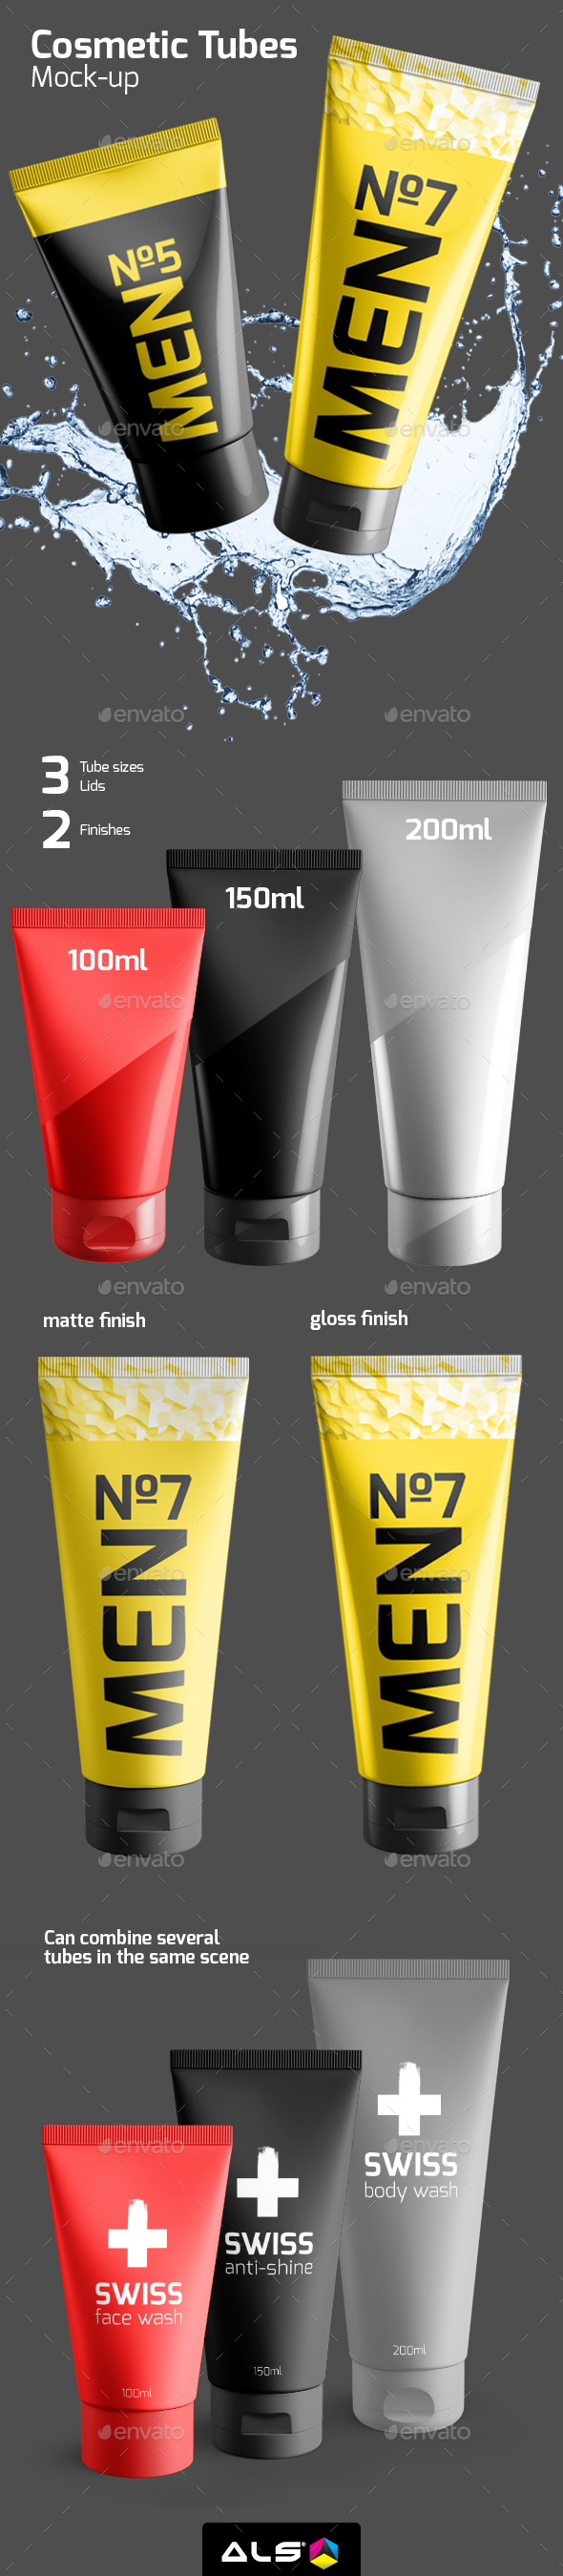 Cosmetic Tube Mock-up - Beauty Packaging